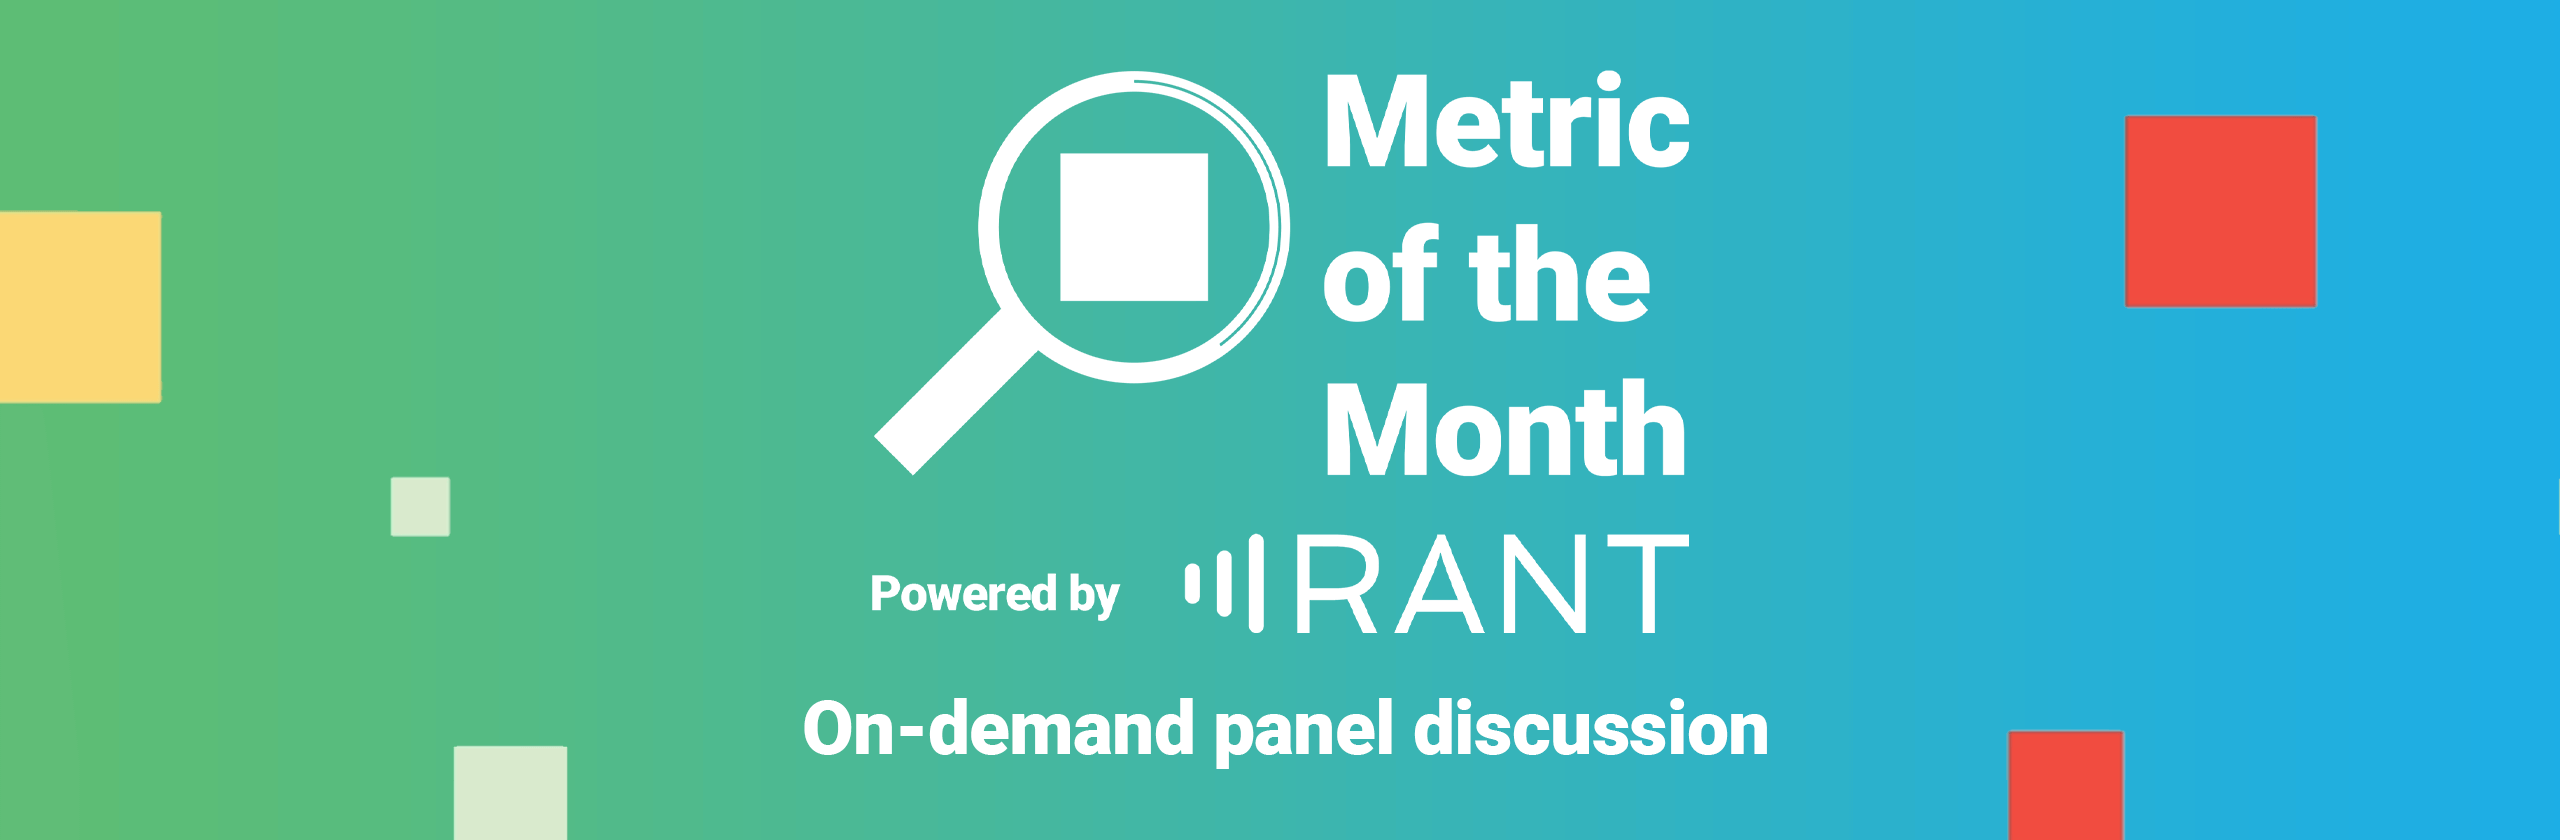 Metric of the Month on-demand panel discussion banner